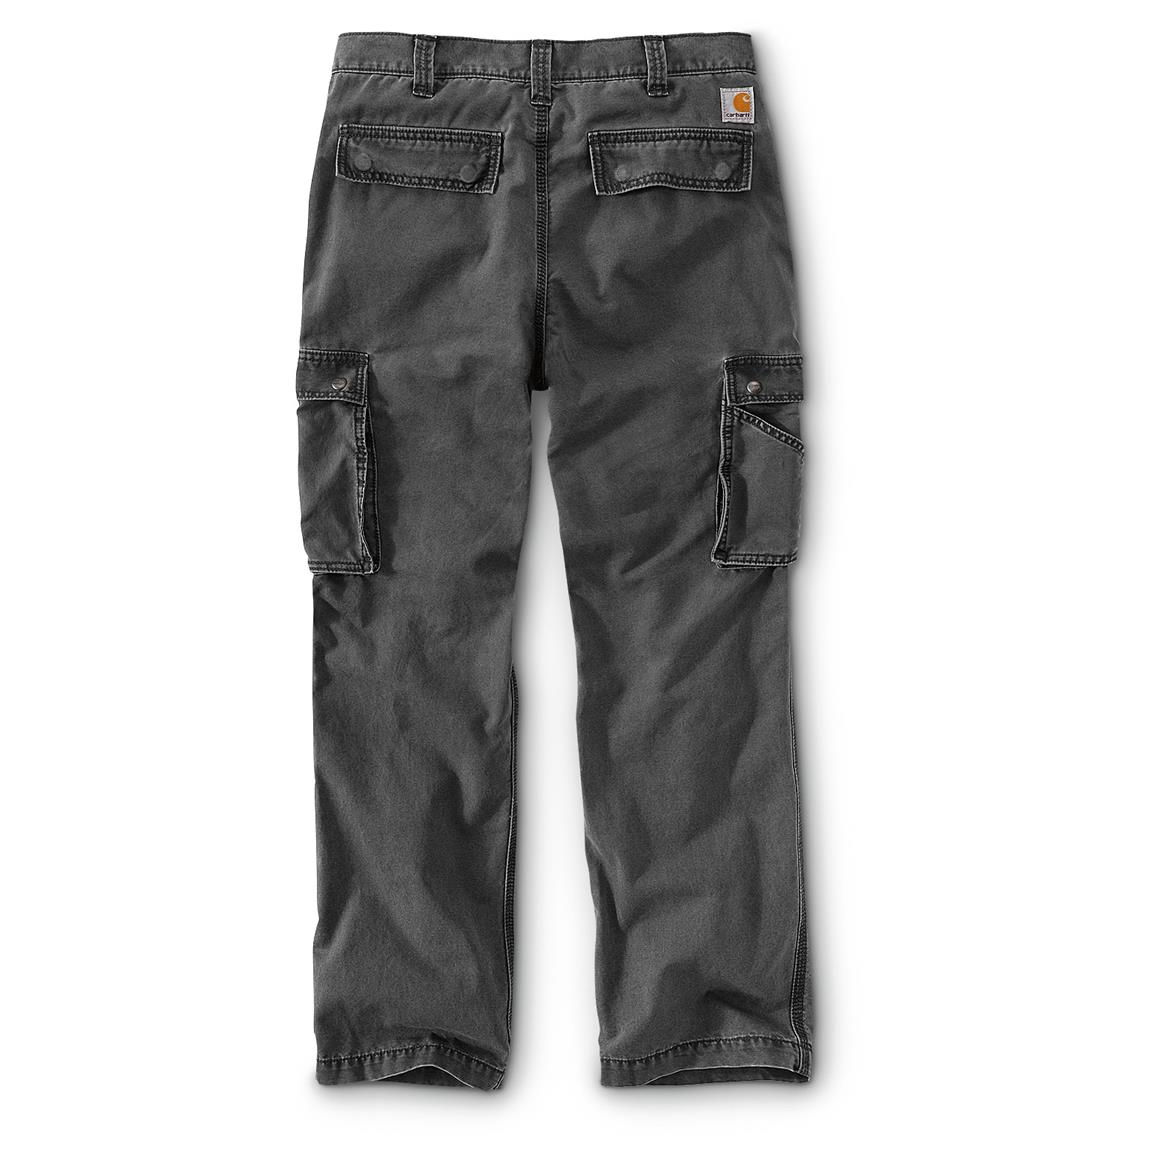 Carhartt Men's Rugged Cargo Pants, Gravel